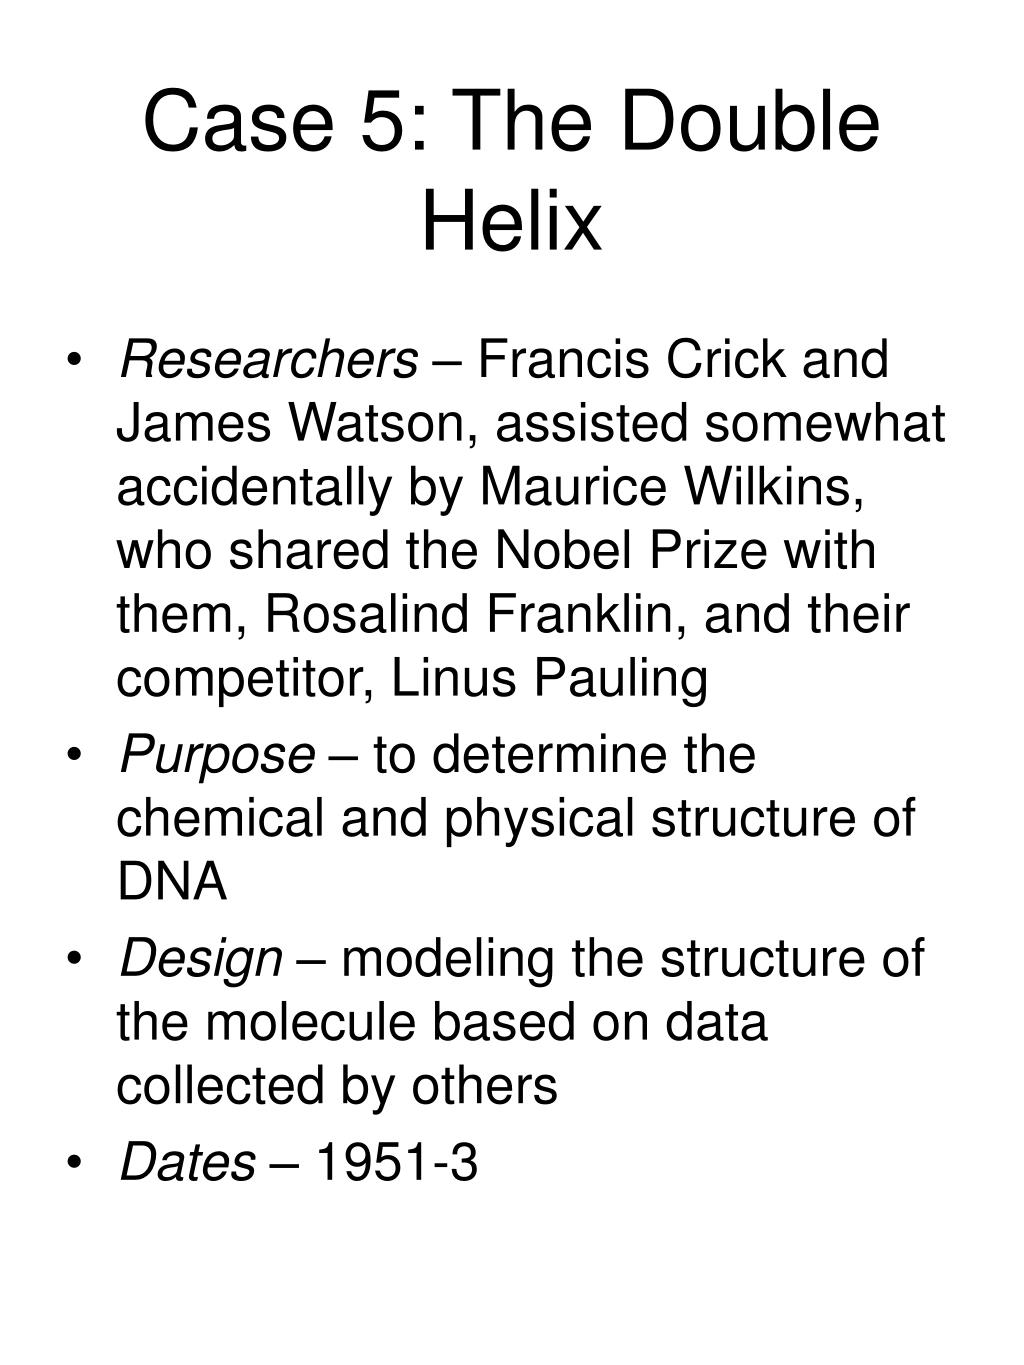 Case 5: The Double Helix